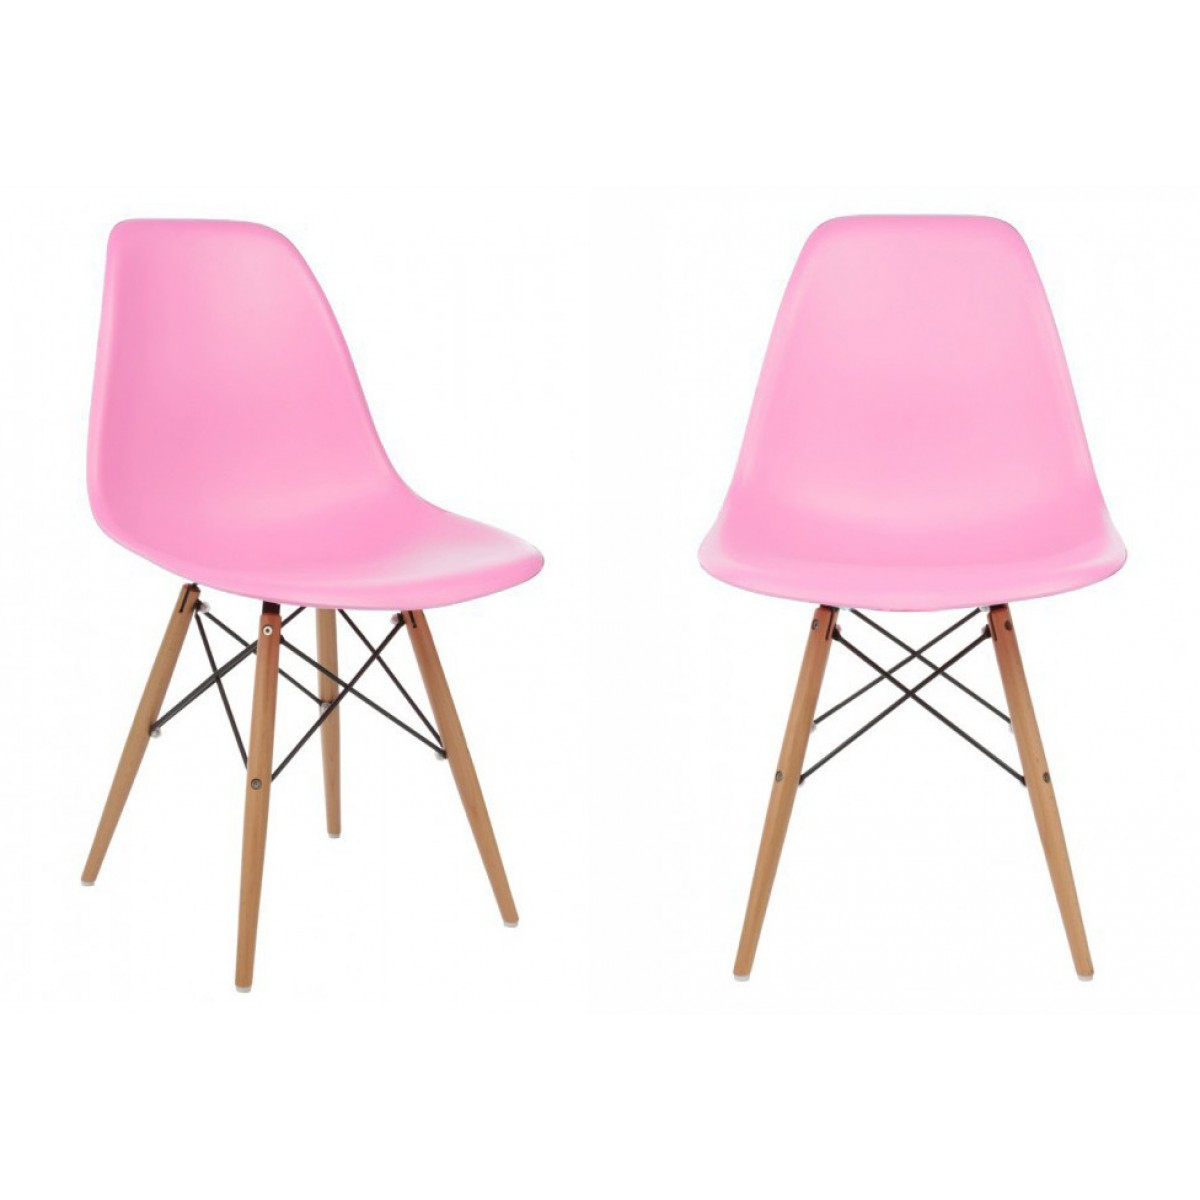 Eames plastic chair wooden legs - Set Of 2 Dsw Molded Pink Plastic Dining Shell Chair With Wood Eiffel Legs